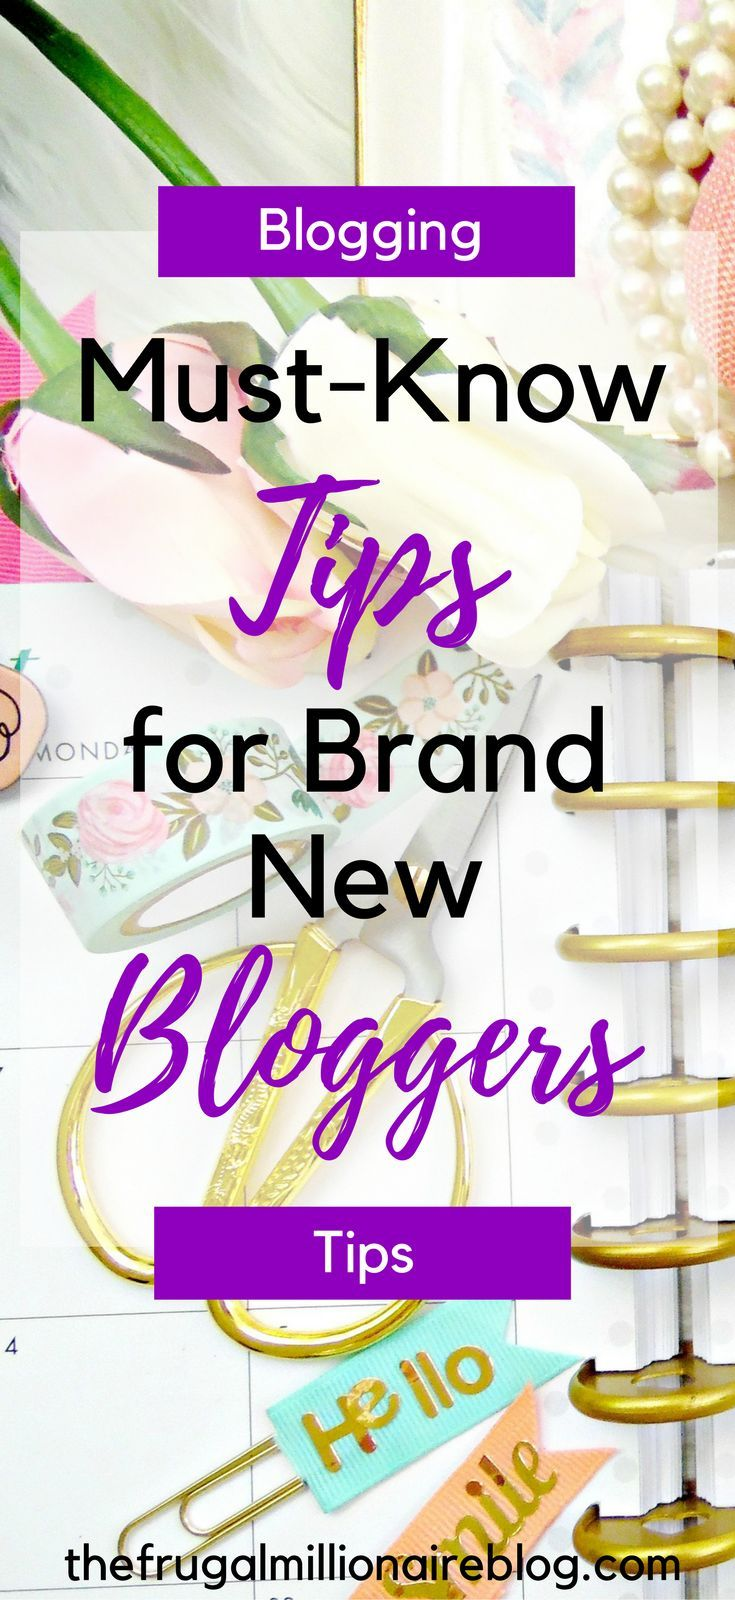 Are you new to blogging?! If so, this guide is a MUST!! These tips for brand new bloggers are so helpful and will get you started on the right foot!